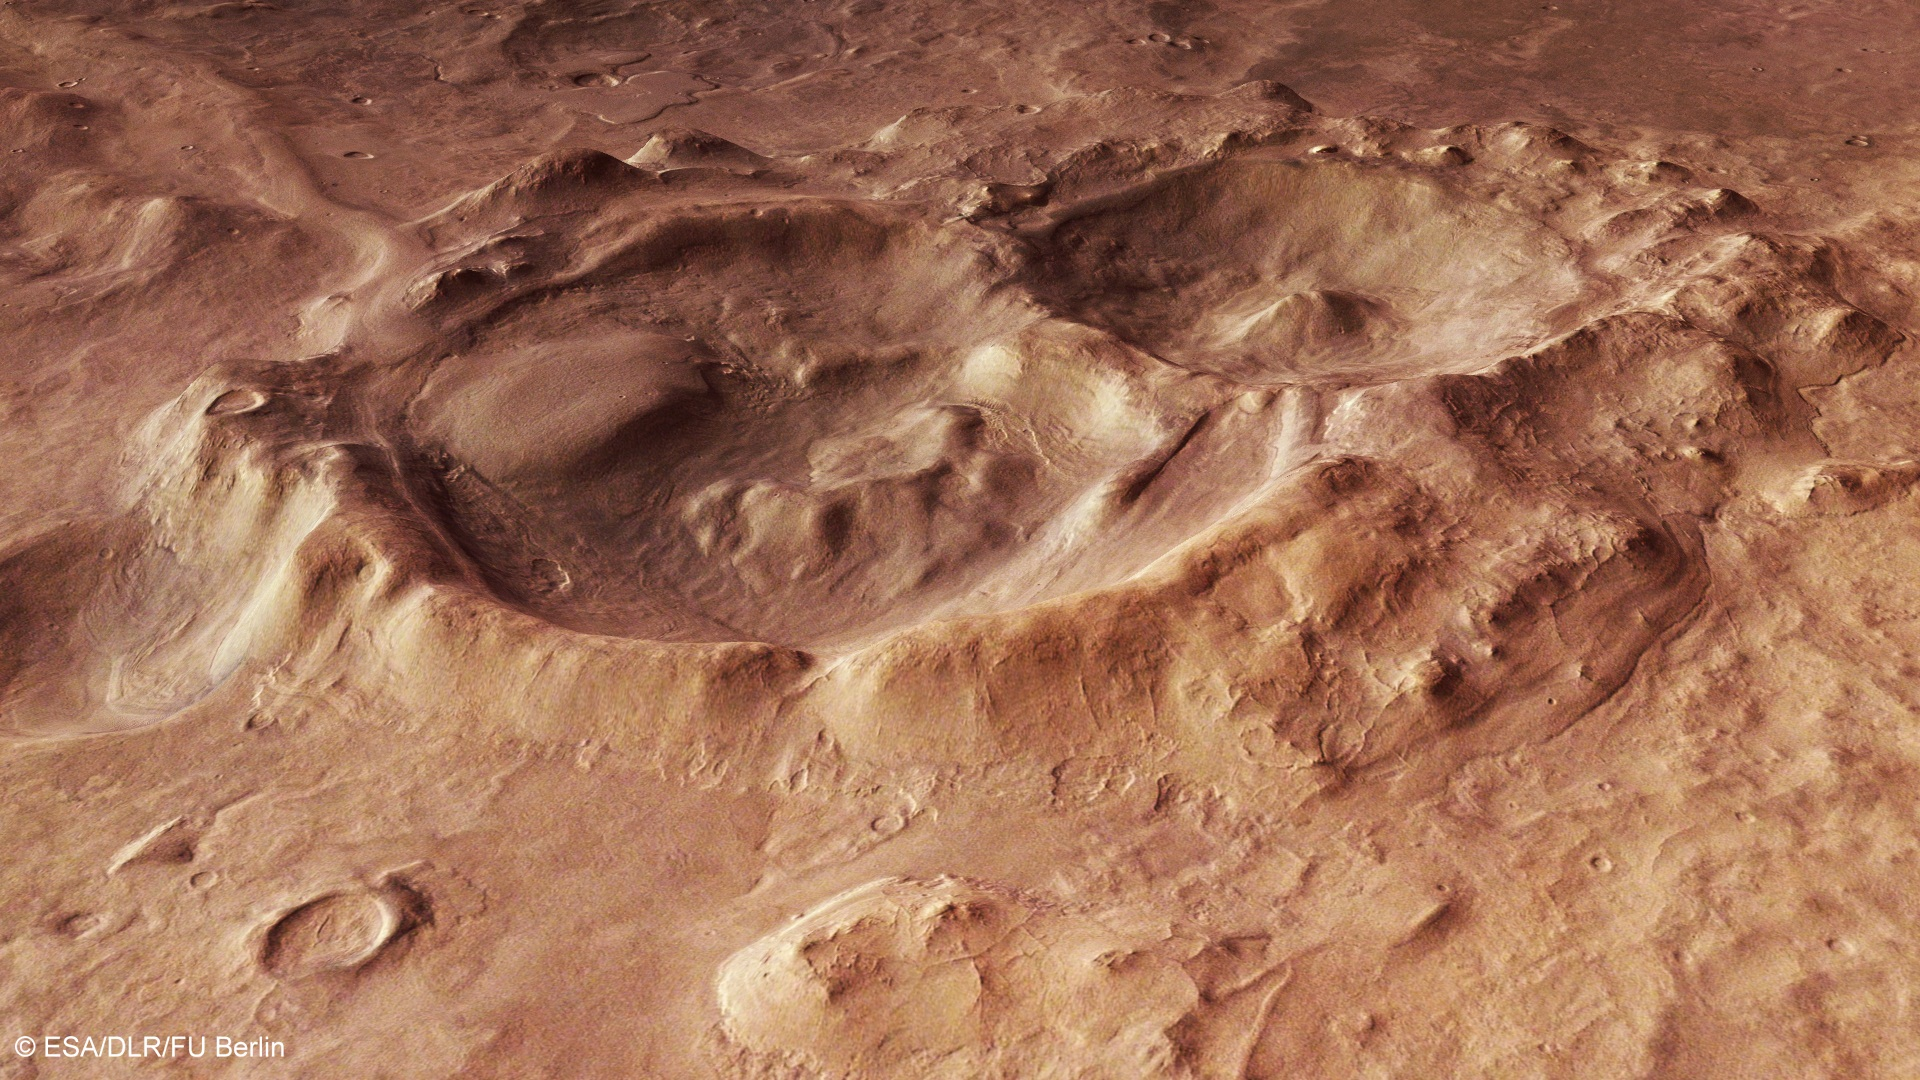 1567216121824-Mars_Express_HRSC_Craters_within_the_Hellas_Basin.jpg